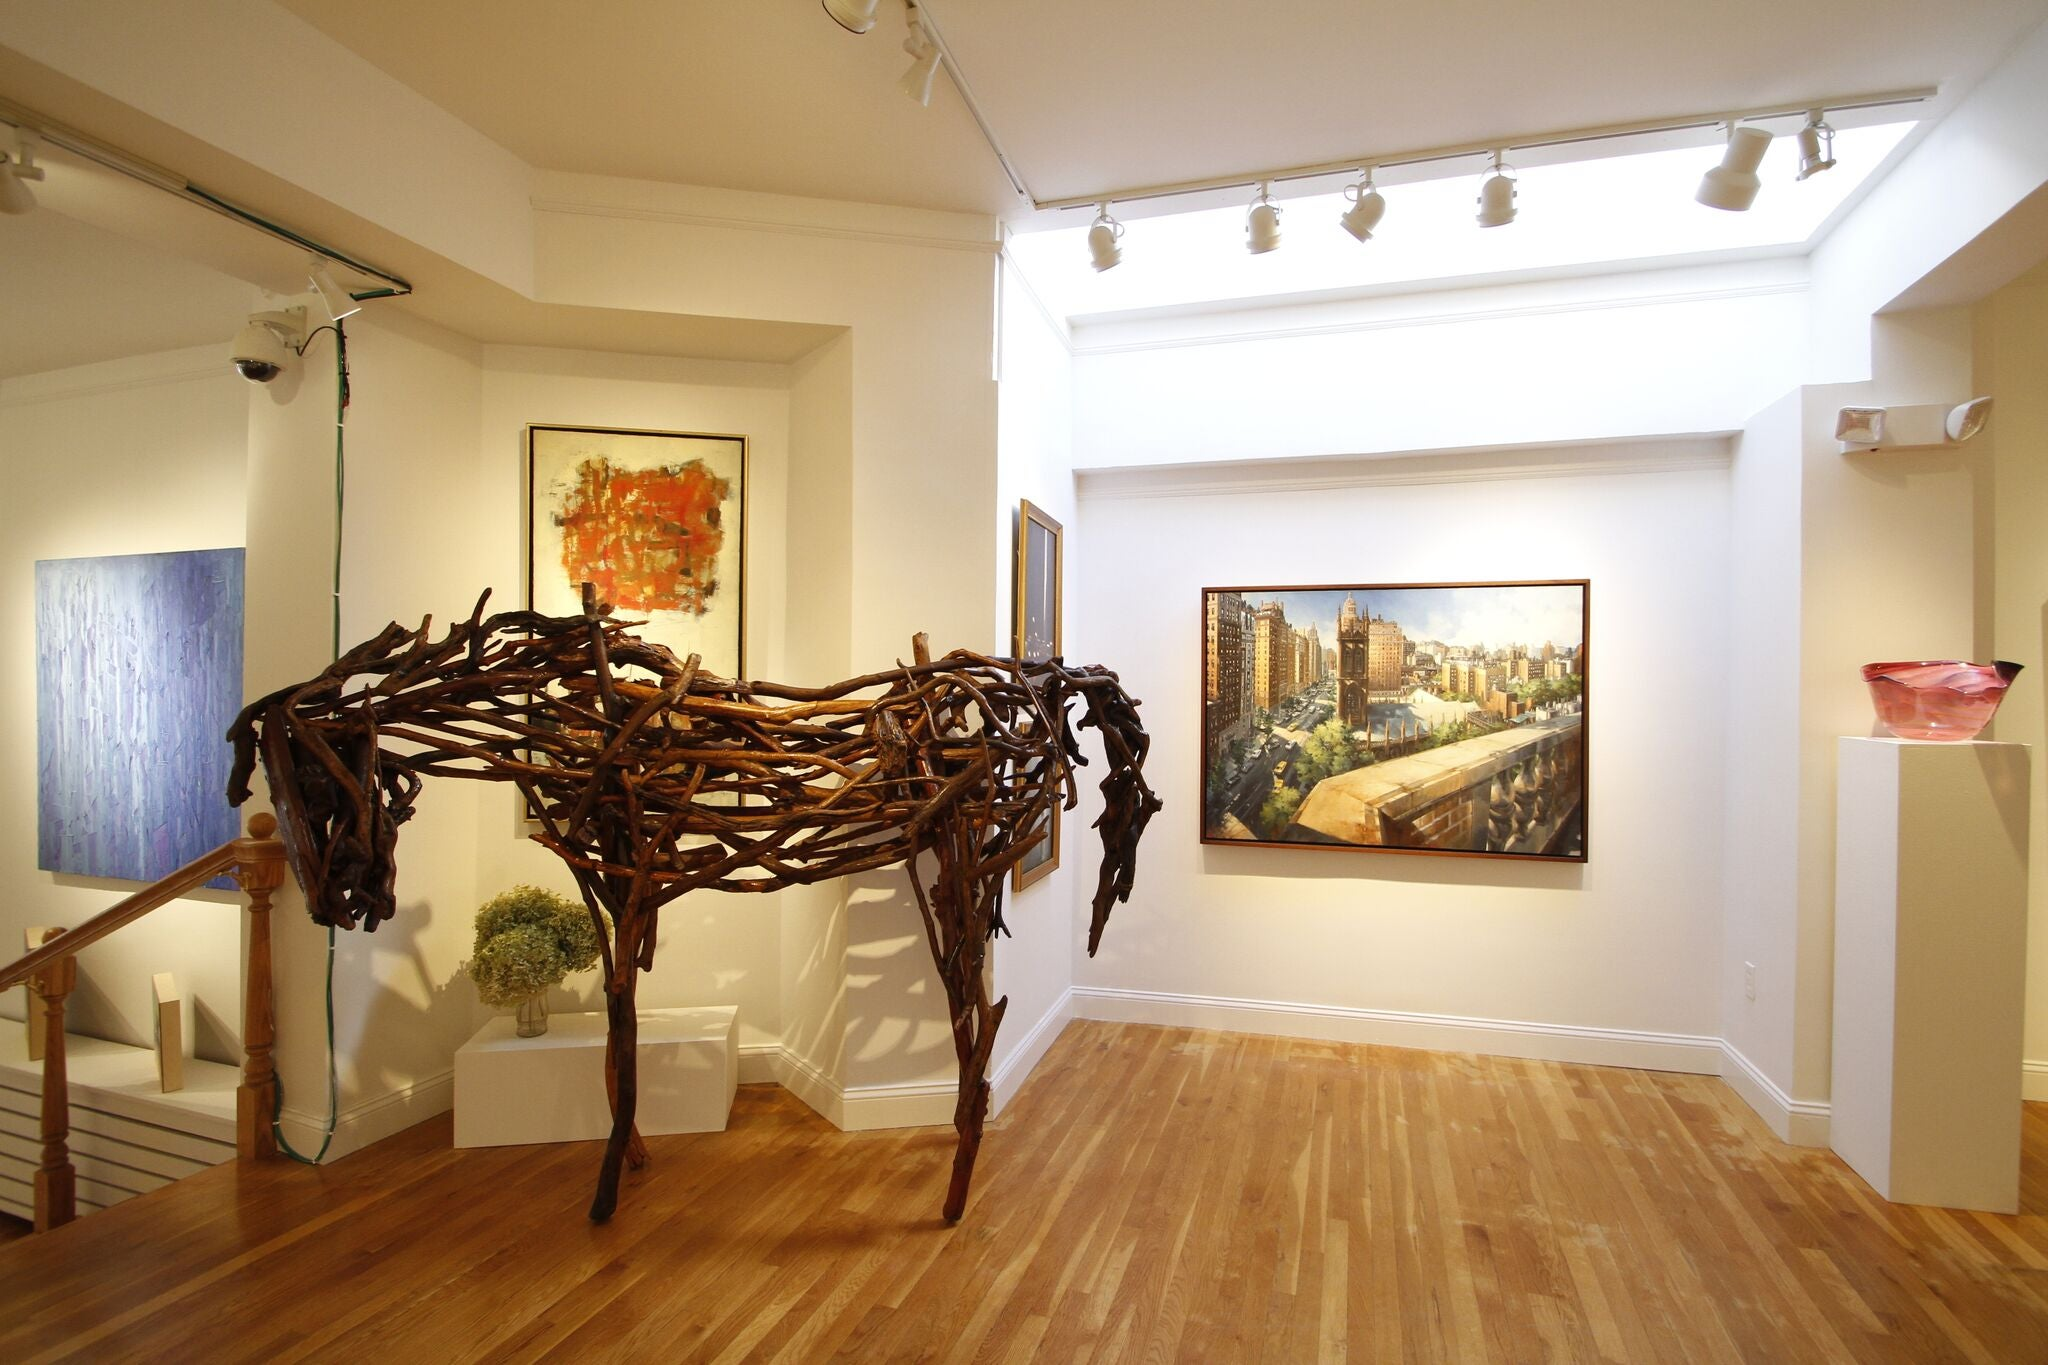 More About Sorelle Gallery